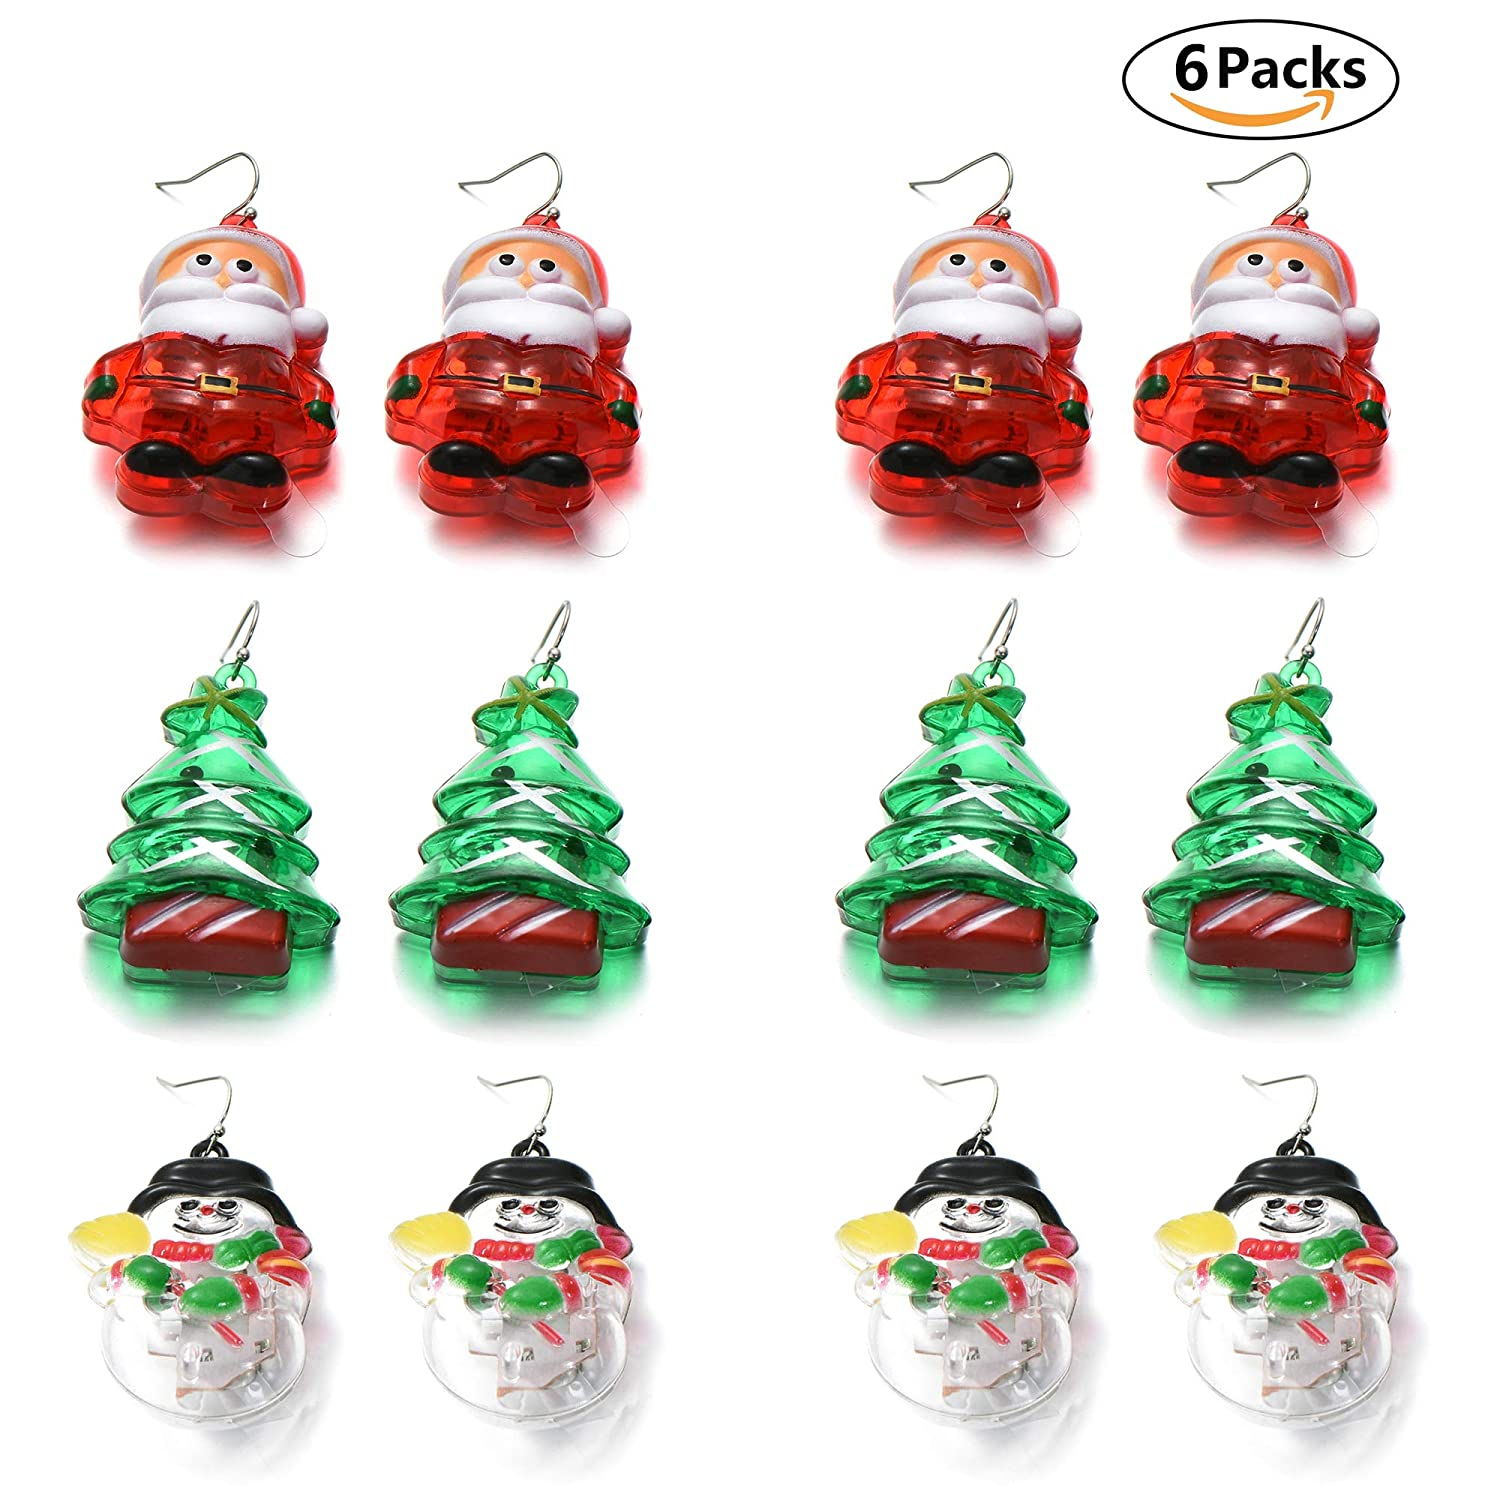 5c52933e8 Amazon.com: OAONNEA 6 Packs LED Light Up Earrings Santa Claus Christmas  Tree Snowman Flashing Earrings Xmas Holiday Party Favors (6-Packs Earrings):  Home & ...